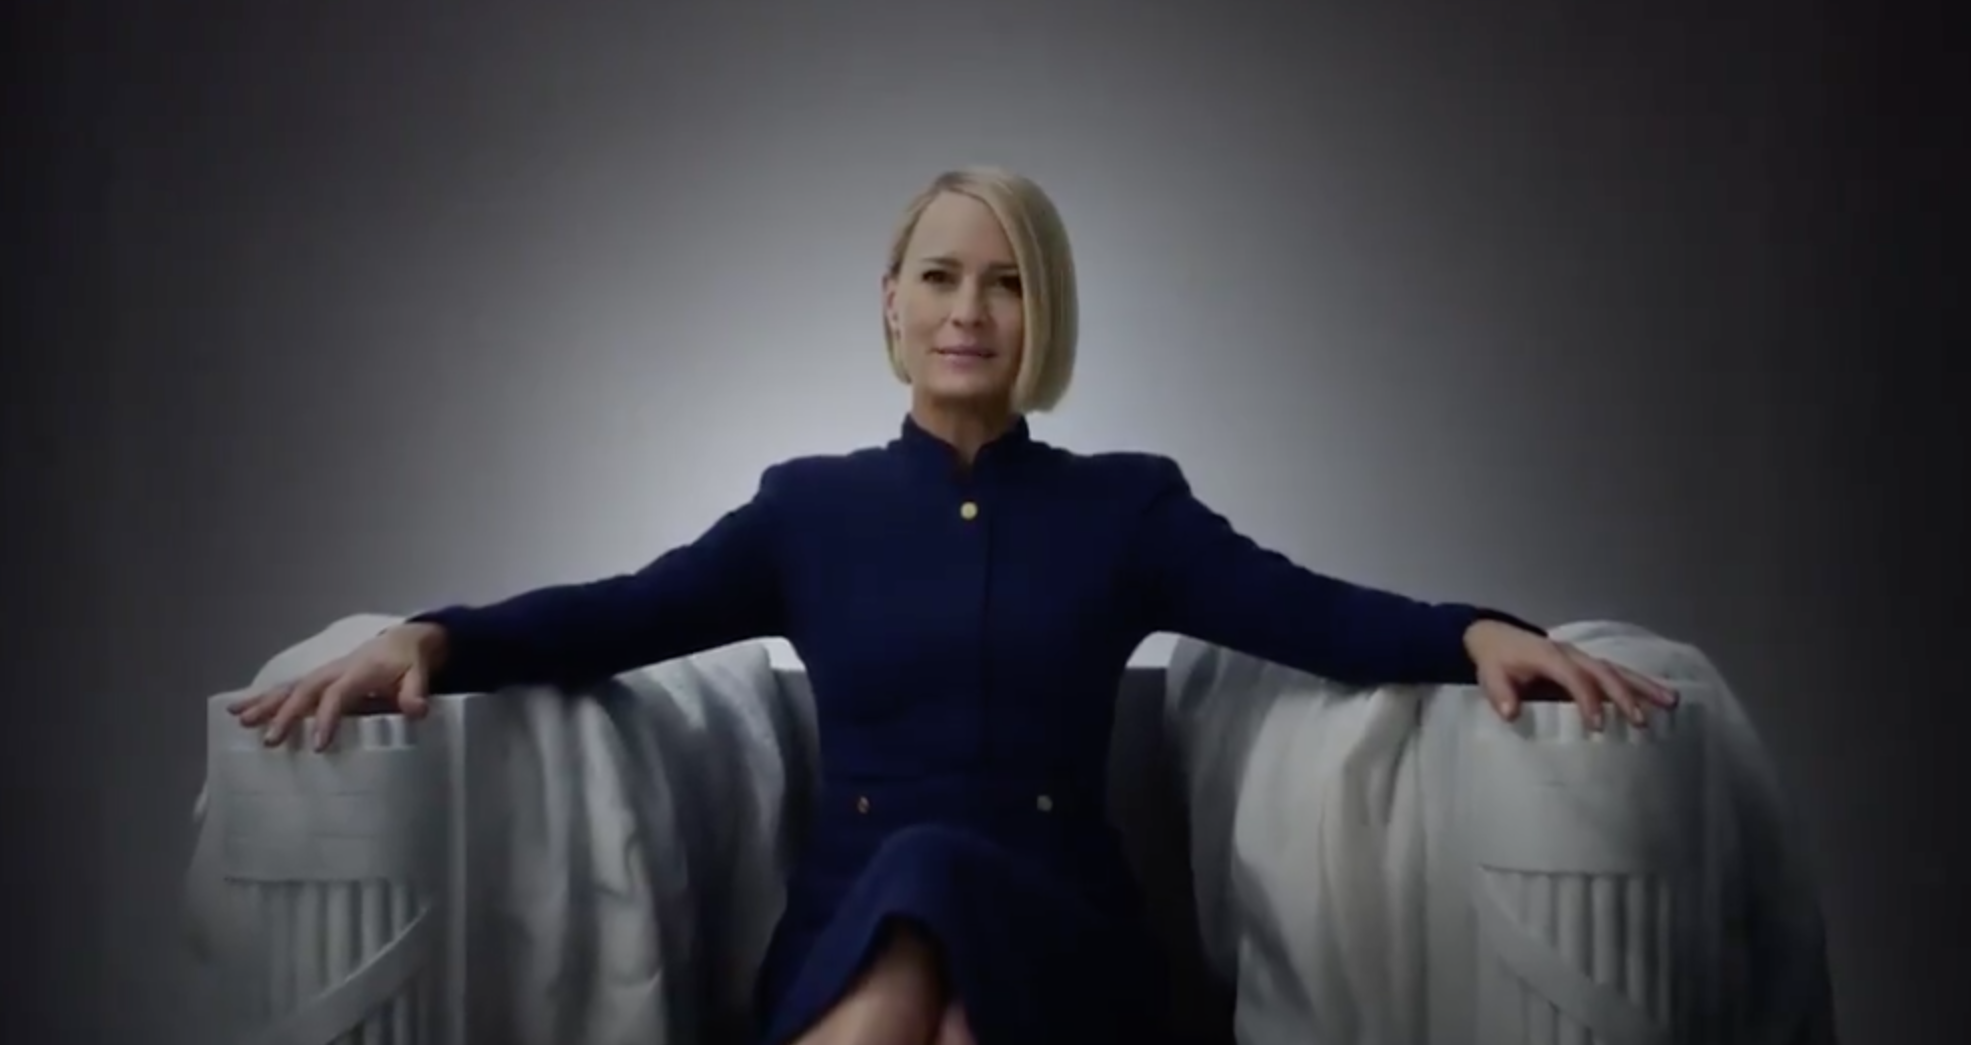 Claire Underwood Takes Centre Stage In Ominous New 'House Of Cards' Promo